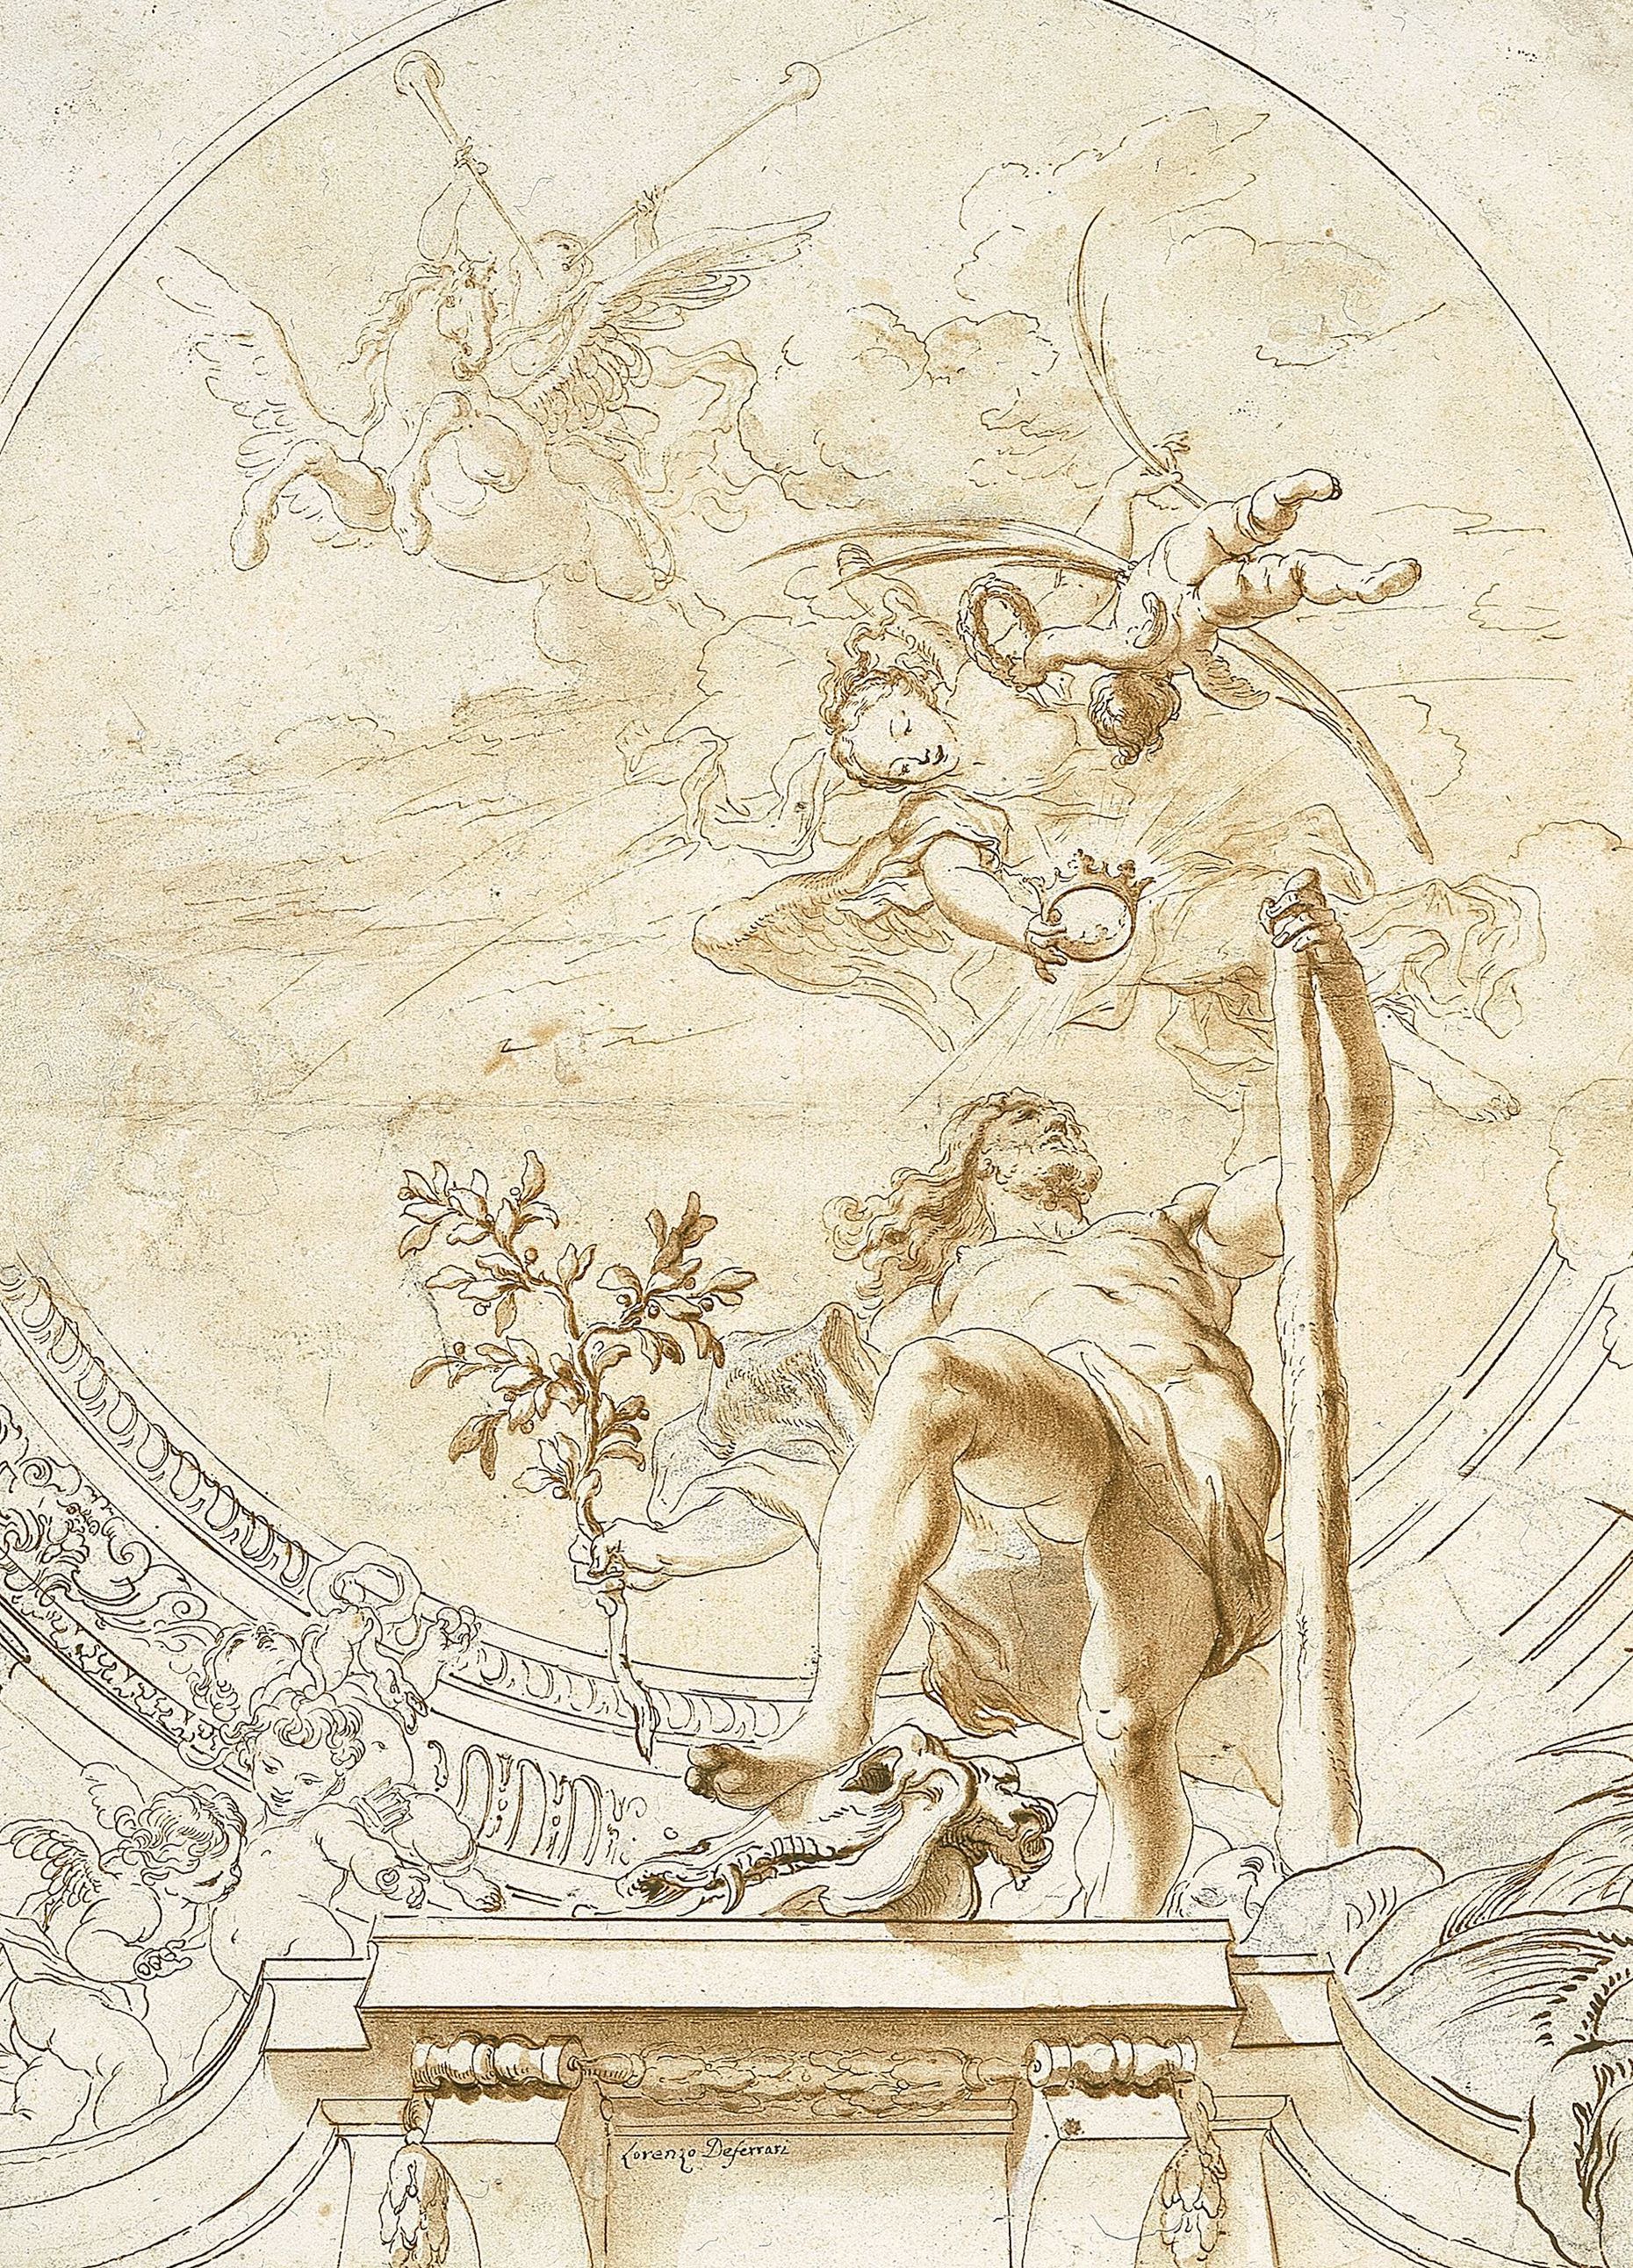 "Lorenzo de' Ferrari ""Triumph of Hercules"" show in Illusion and Imagination: Pictorial Decorations for Architectural Spaces, 1500–1800"